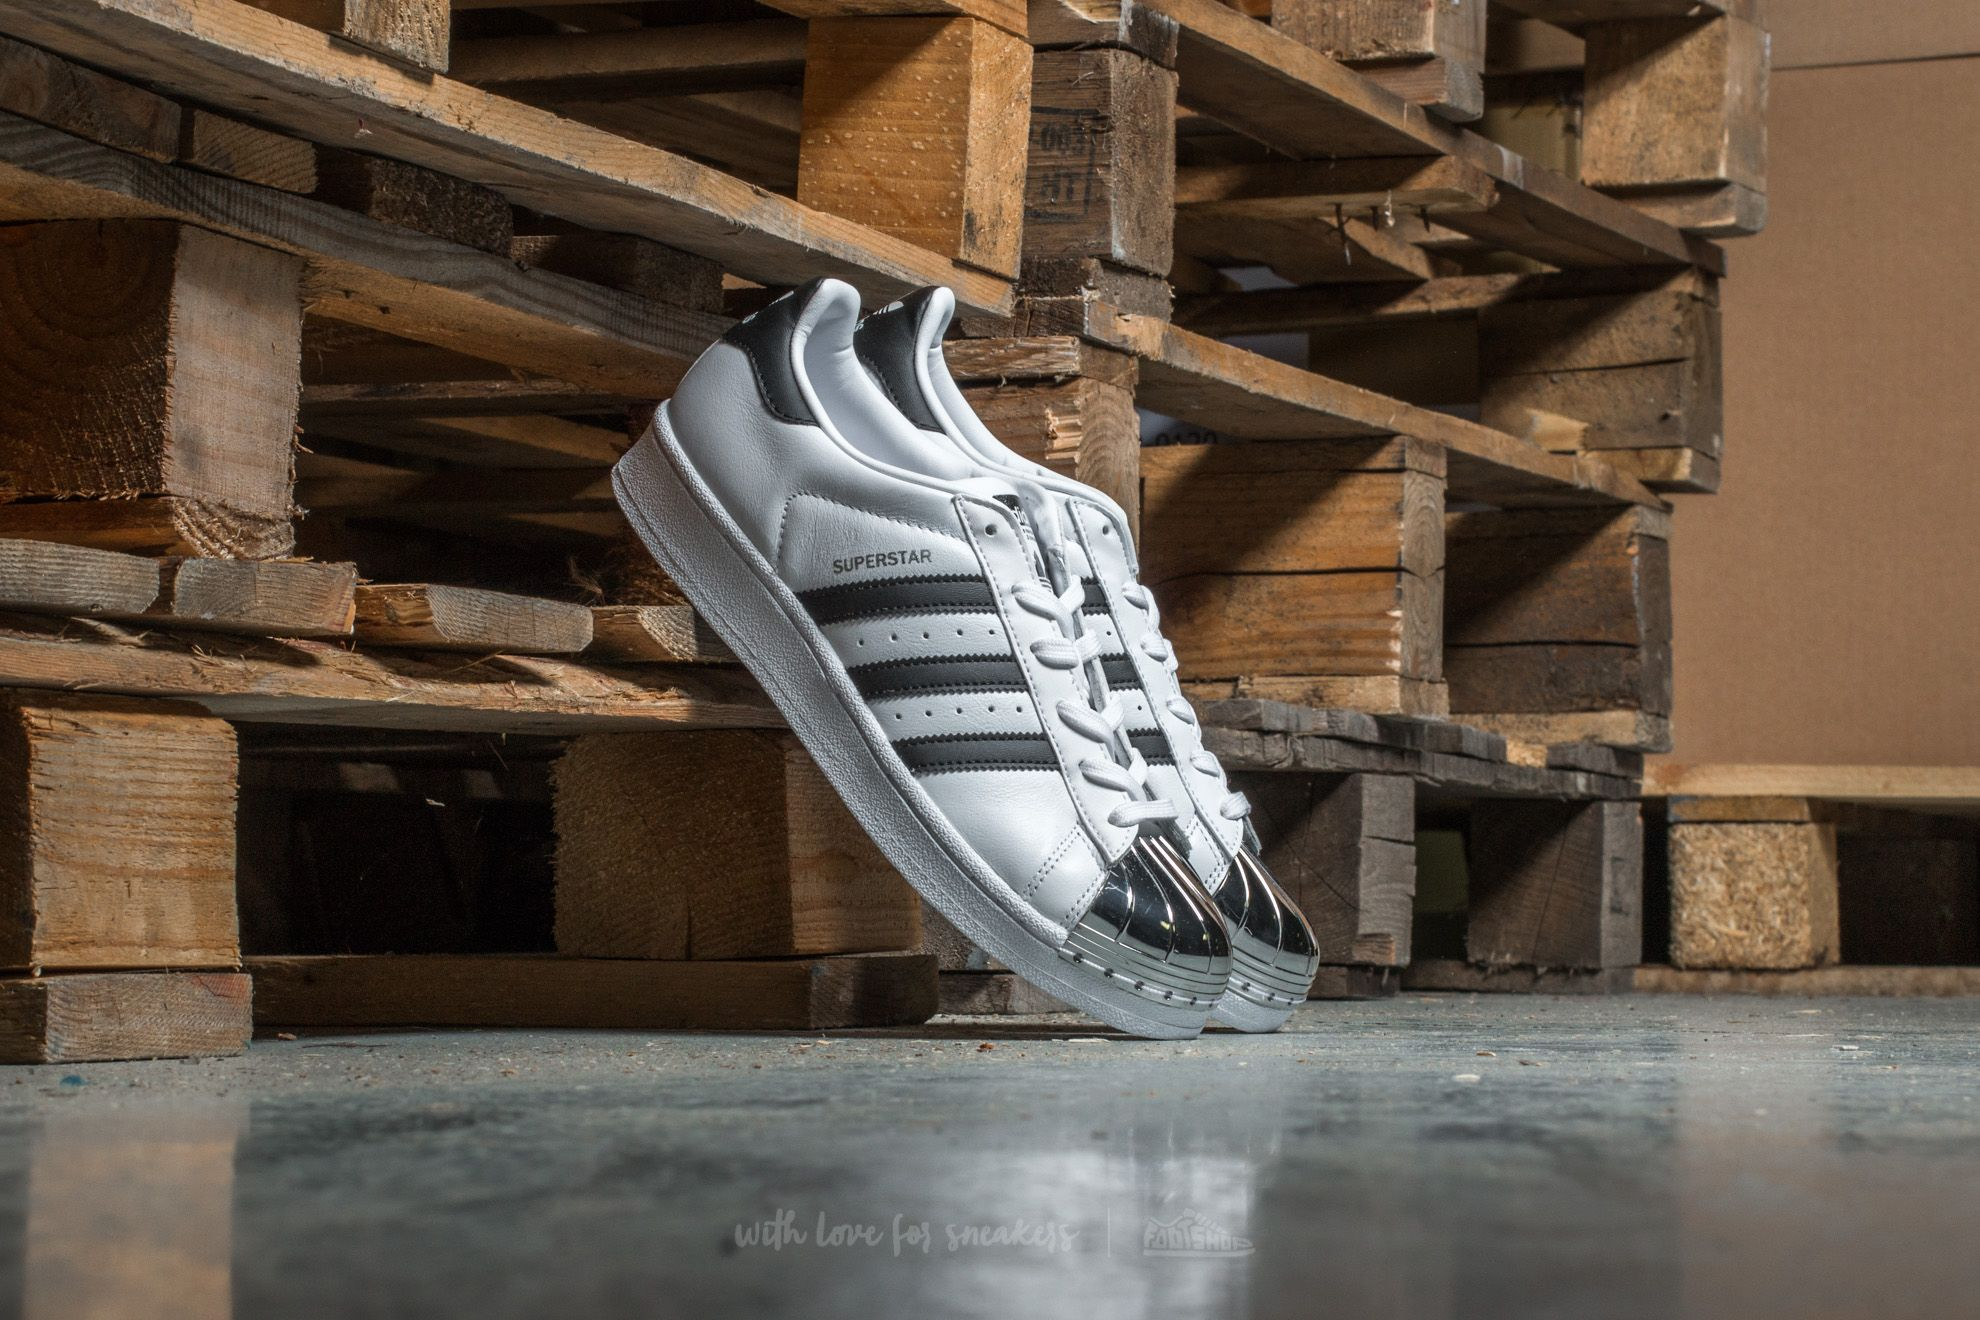 eef53f695a42d5 adidas Superstar Metal Toe W Ftw White  Core Black  Silver